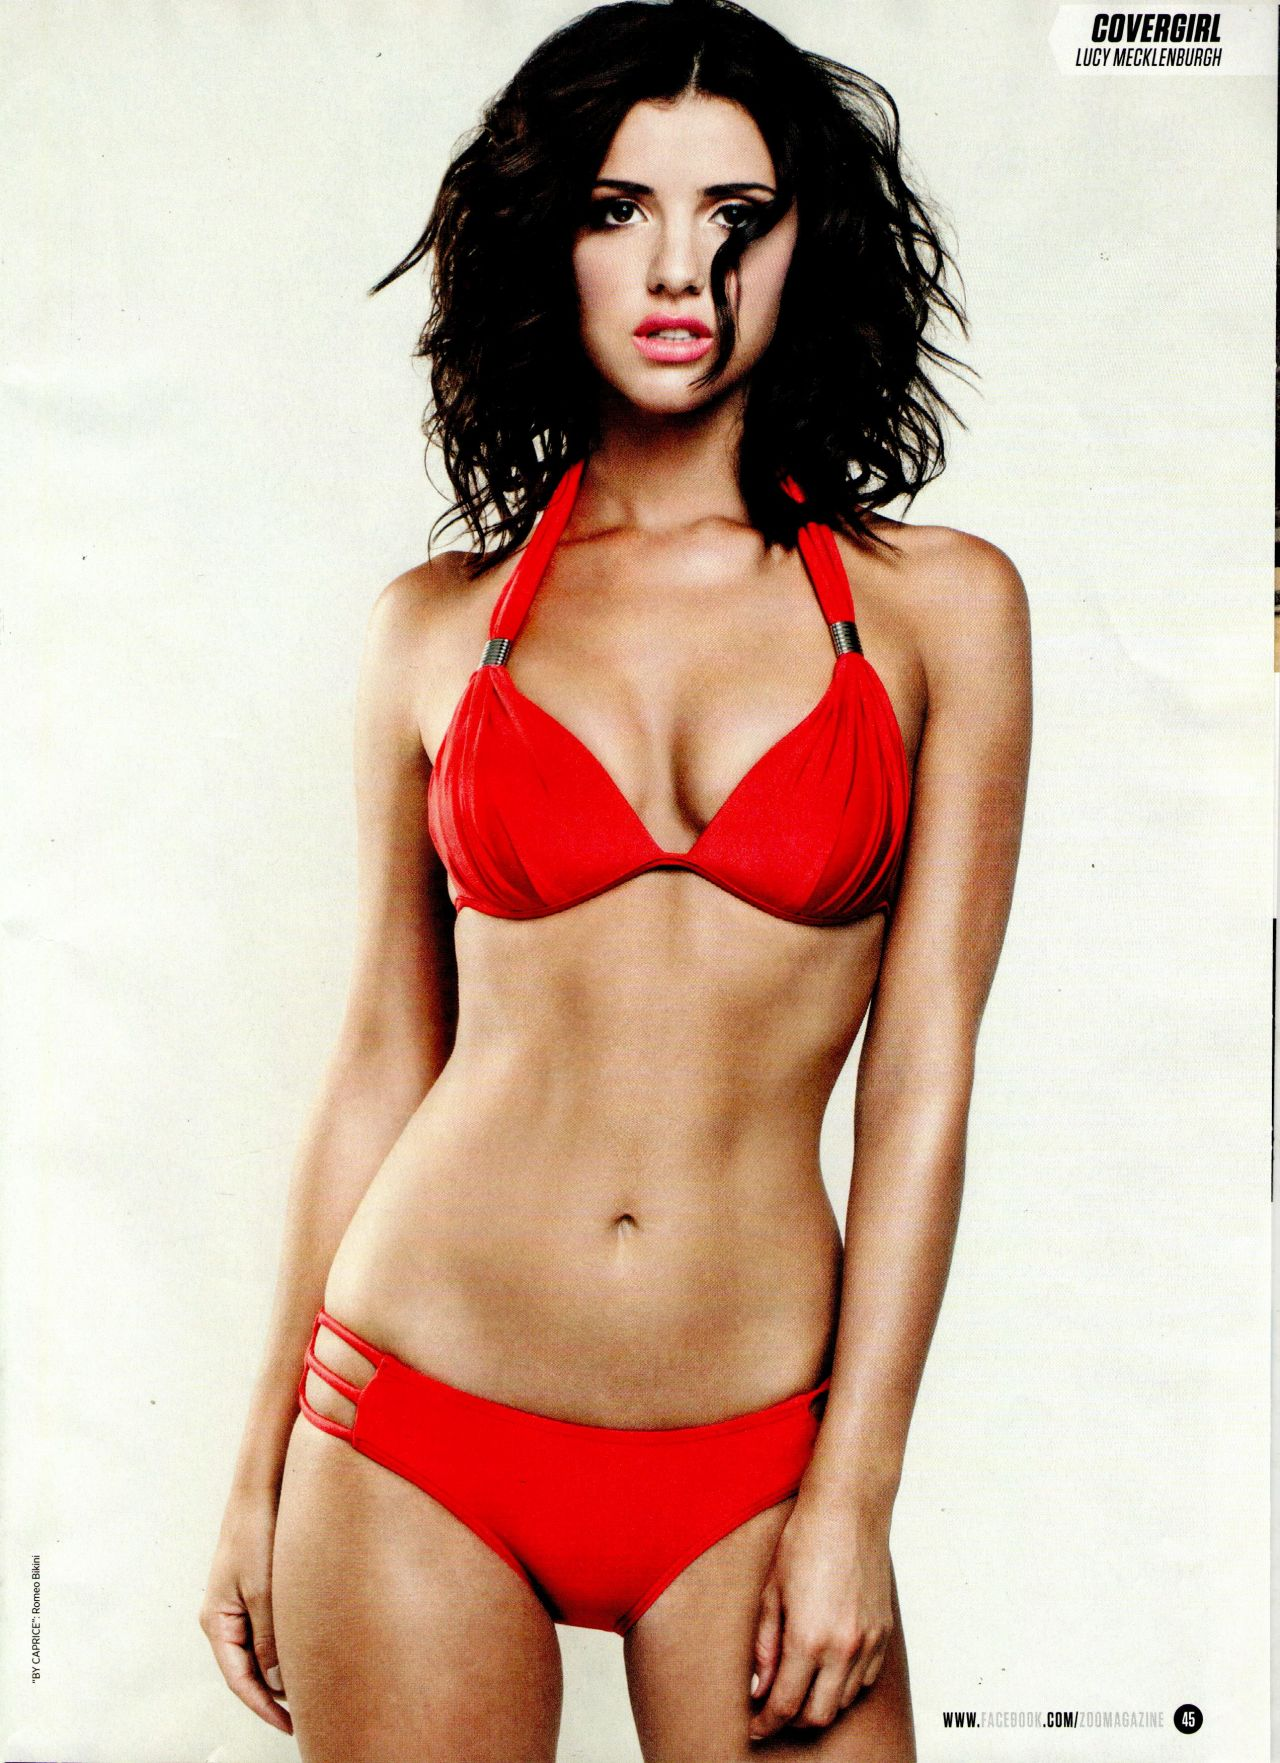 Lucy Mecklenburgh in ZOO Magazine